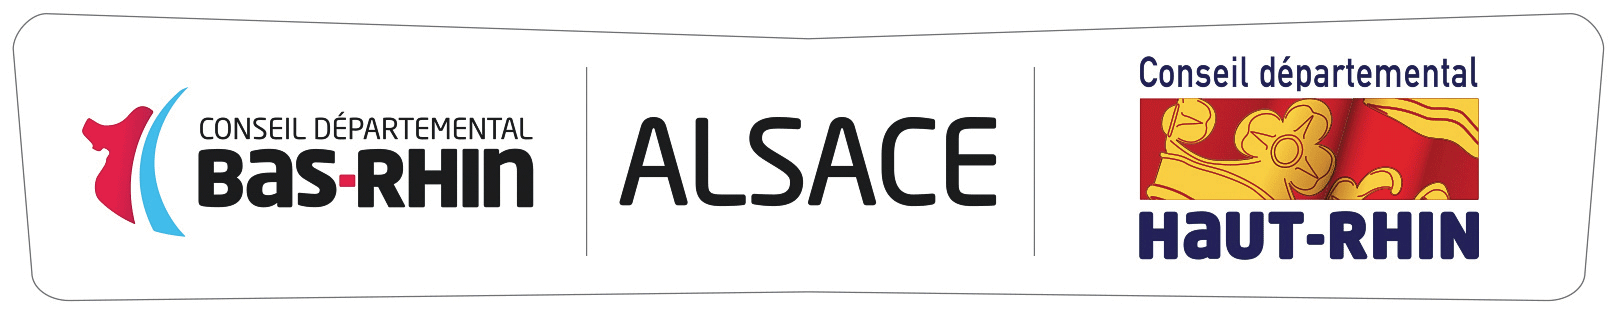 logo-conjoint-alsace